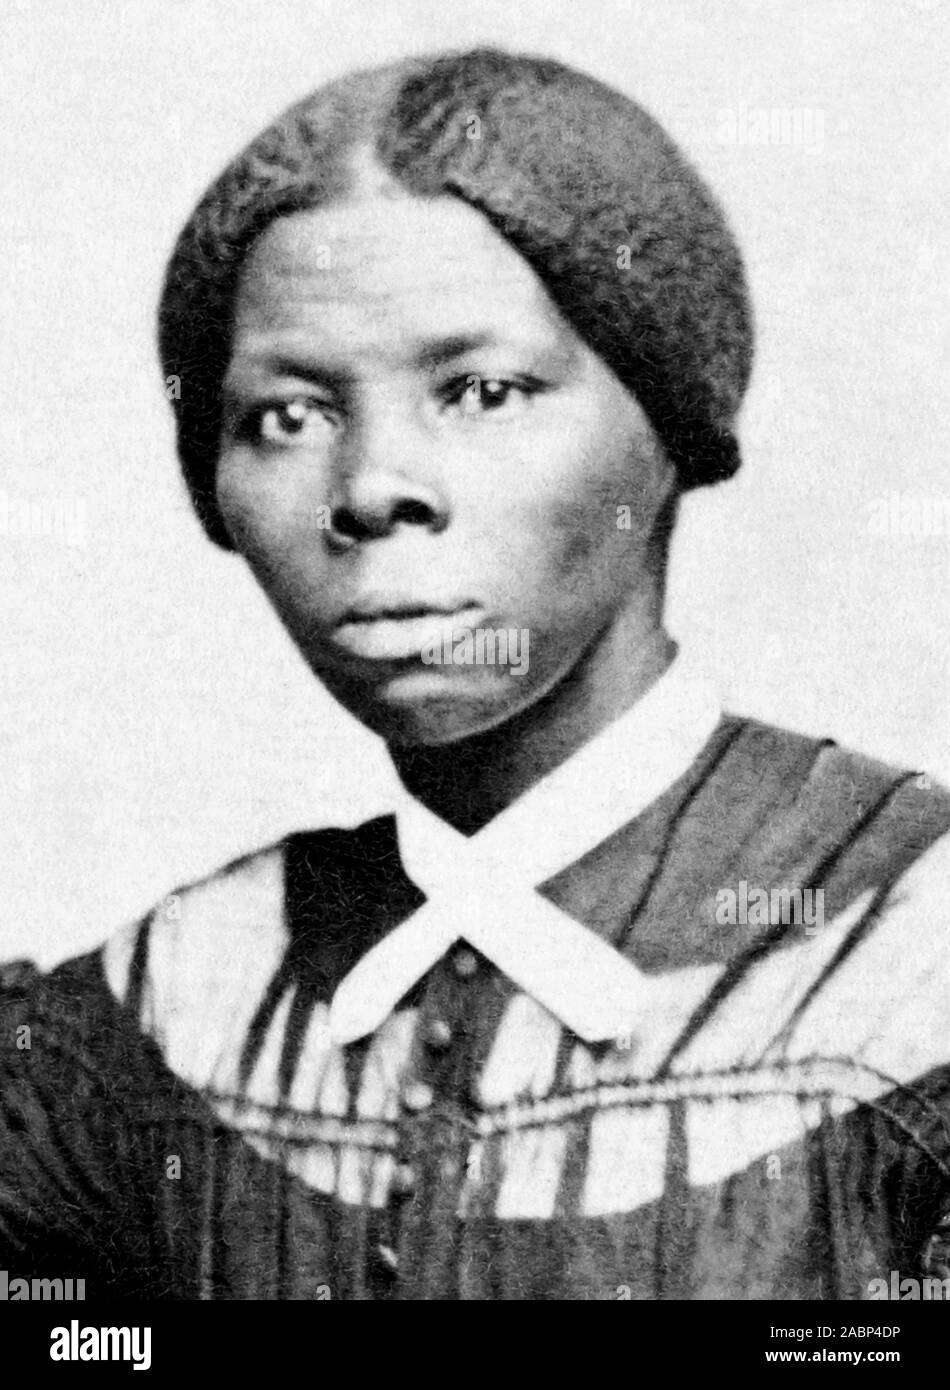 Vintage portrait photo of Harriet Tubman (c1820 – 1913). Born into slavery, Tubman (birth name Araminta Ross) escaped and later guided other slaves to freedom via the Underground Railroad before working as a nurse, spy and scout for the Union Army during the American Civil War. In later life she engaged in humanitarian work and promoted the cause of women's suffrage. Photo circa 1868 by Benjamin F Powelson. Stock Photo